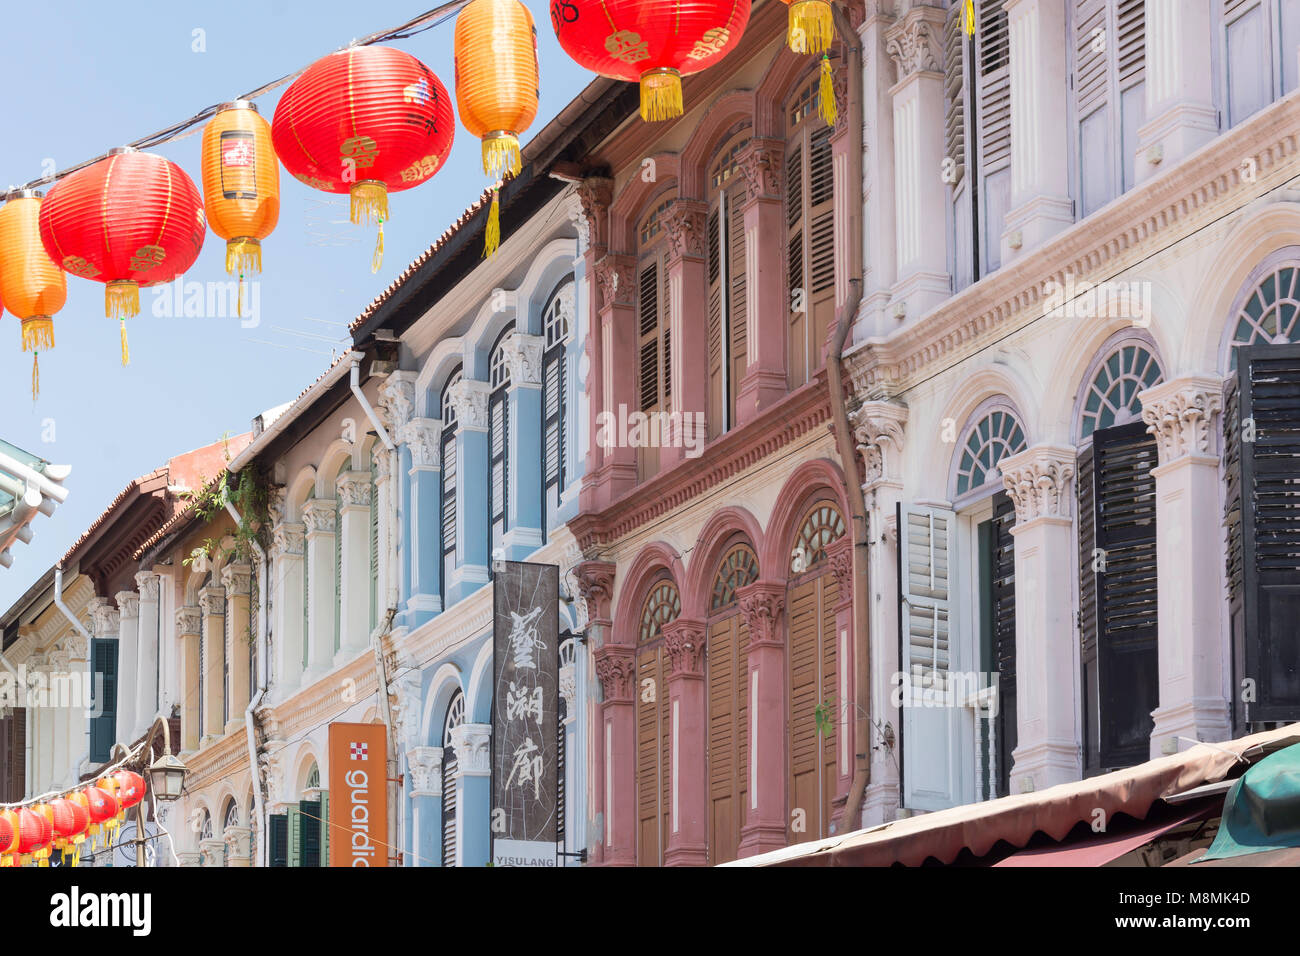 Shophouses and lanterns, Pagoda Street, Chinatown, Outram District, Central Area, Singapore Island (Pulau Ujong), - Stock Image